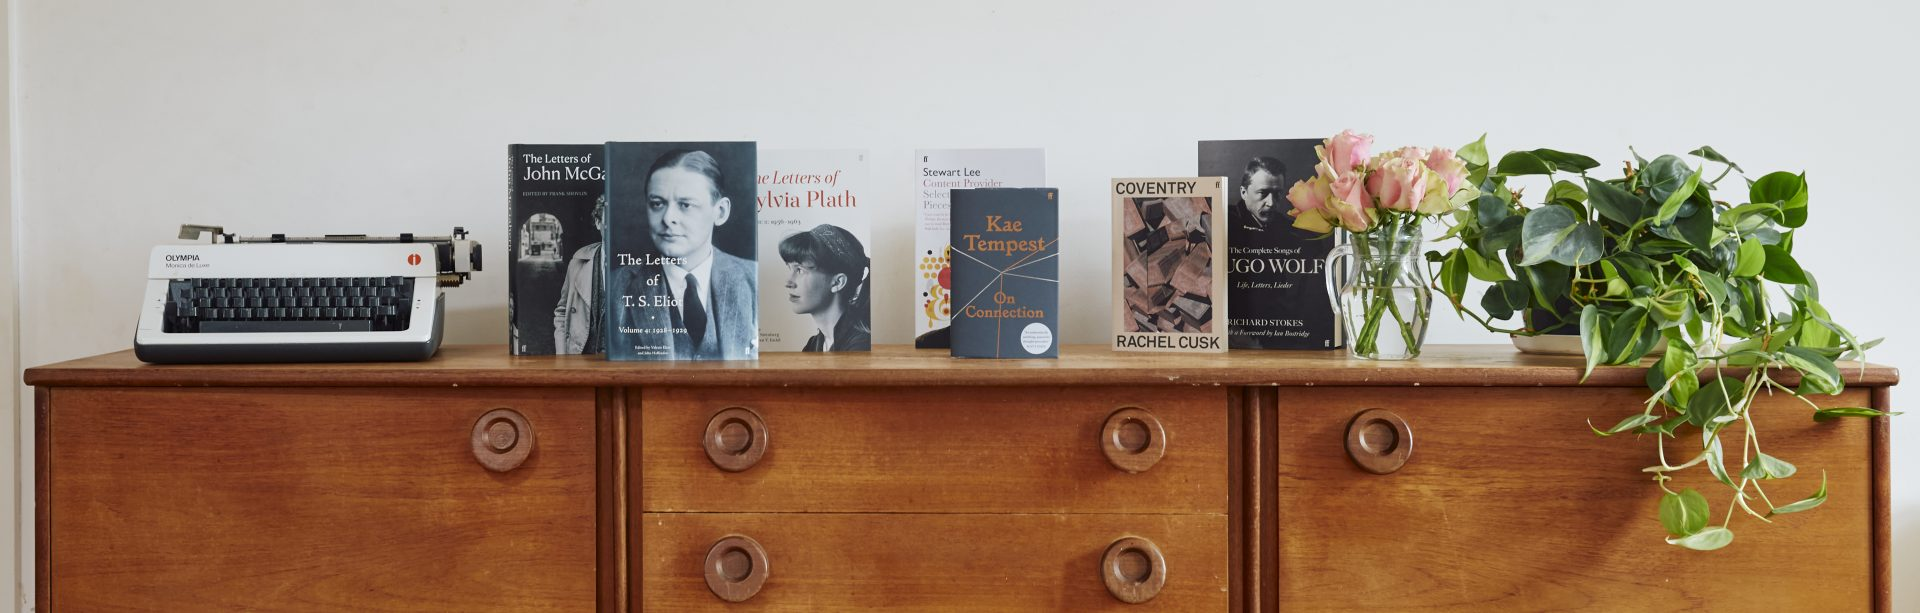 https://www.faber.co.uk/wp-content/uploads/2021/09/non-fiction-essays-and-collections_credit-Lesley-Lau-1920x613.jpg